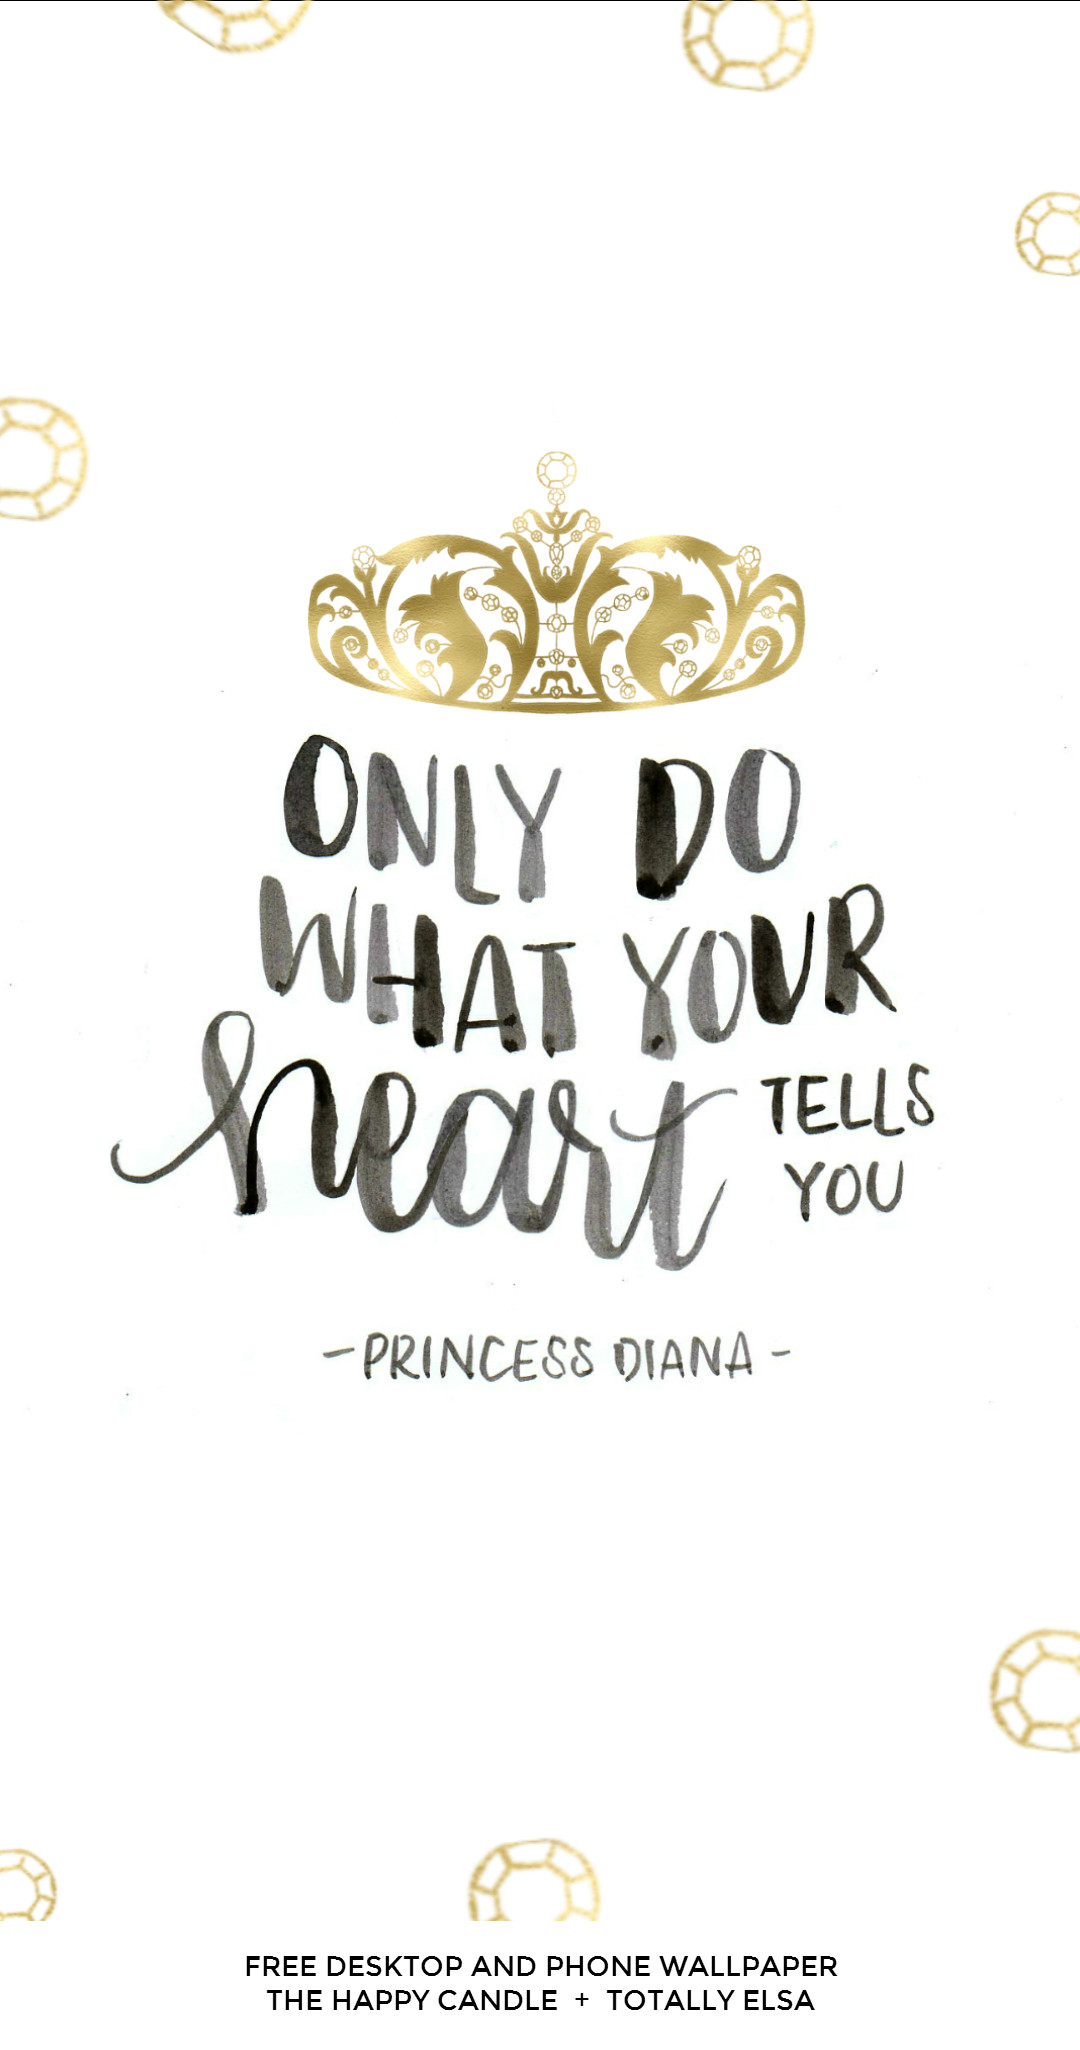 1080x2050 A free desktop and phone wallpaper with a quote from Princess Diana /  Created by The